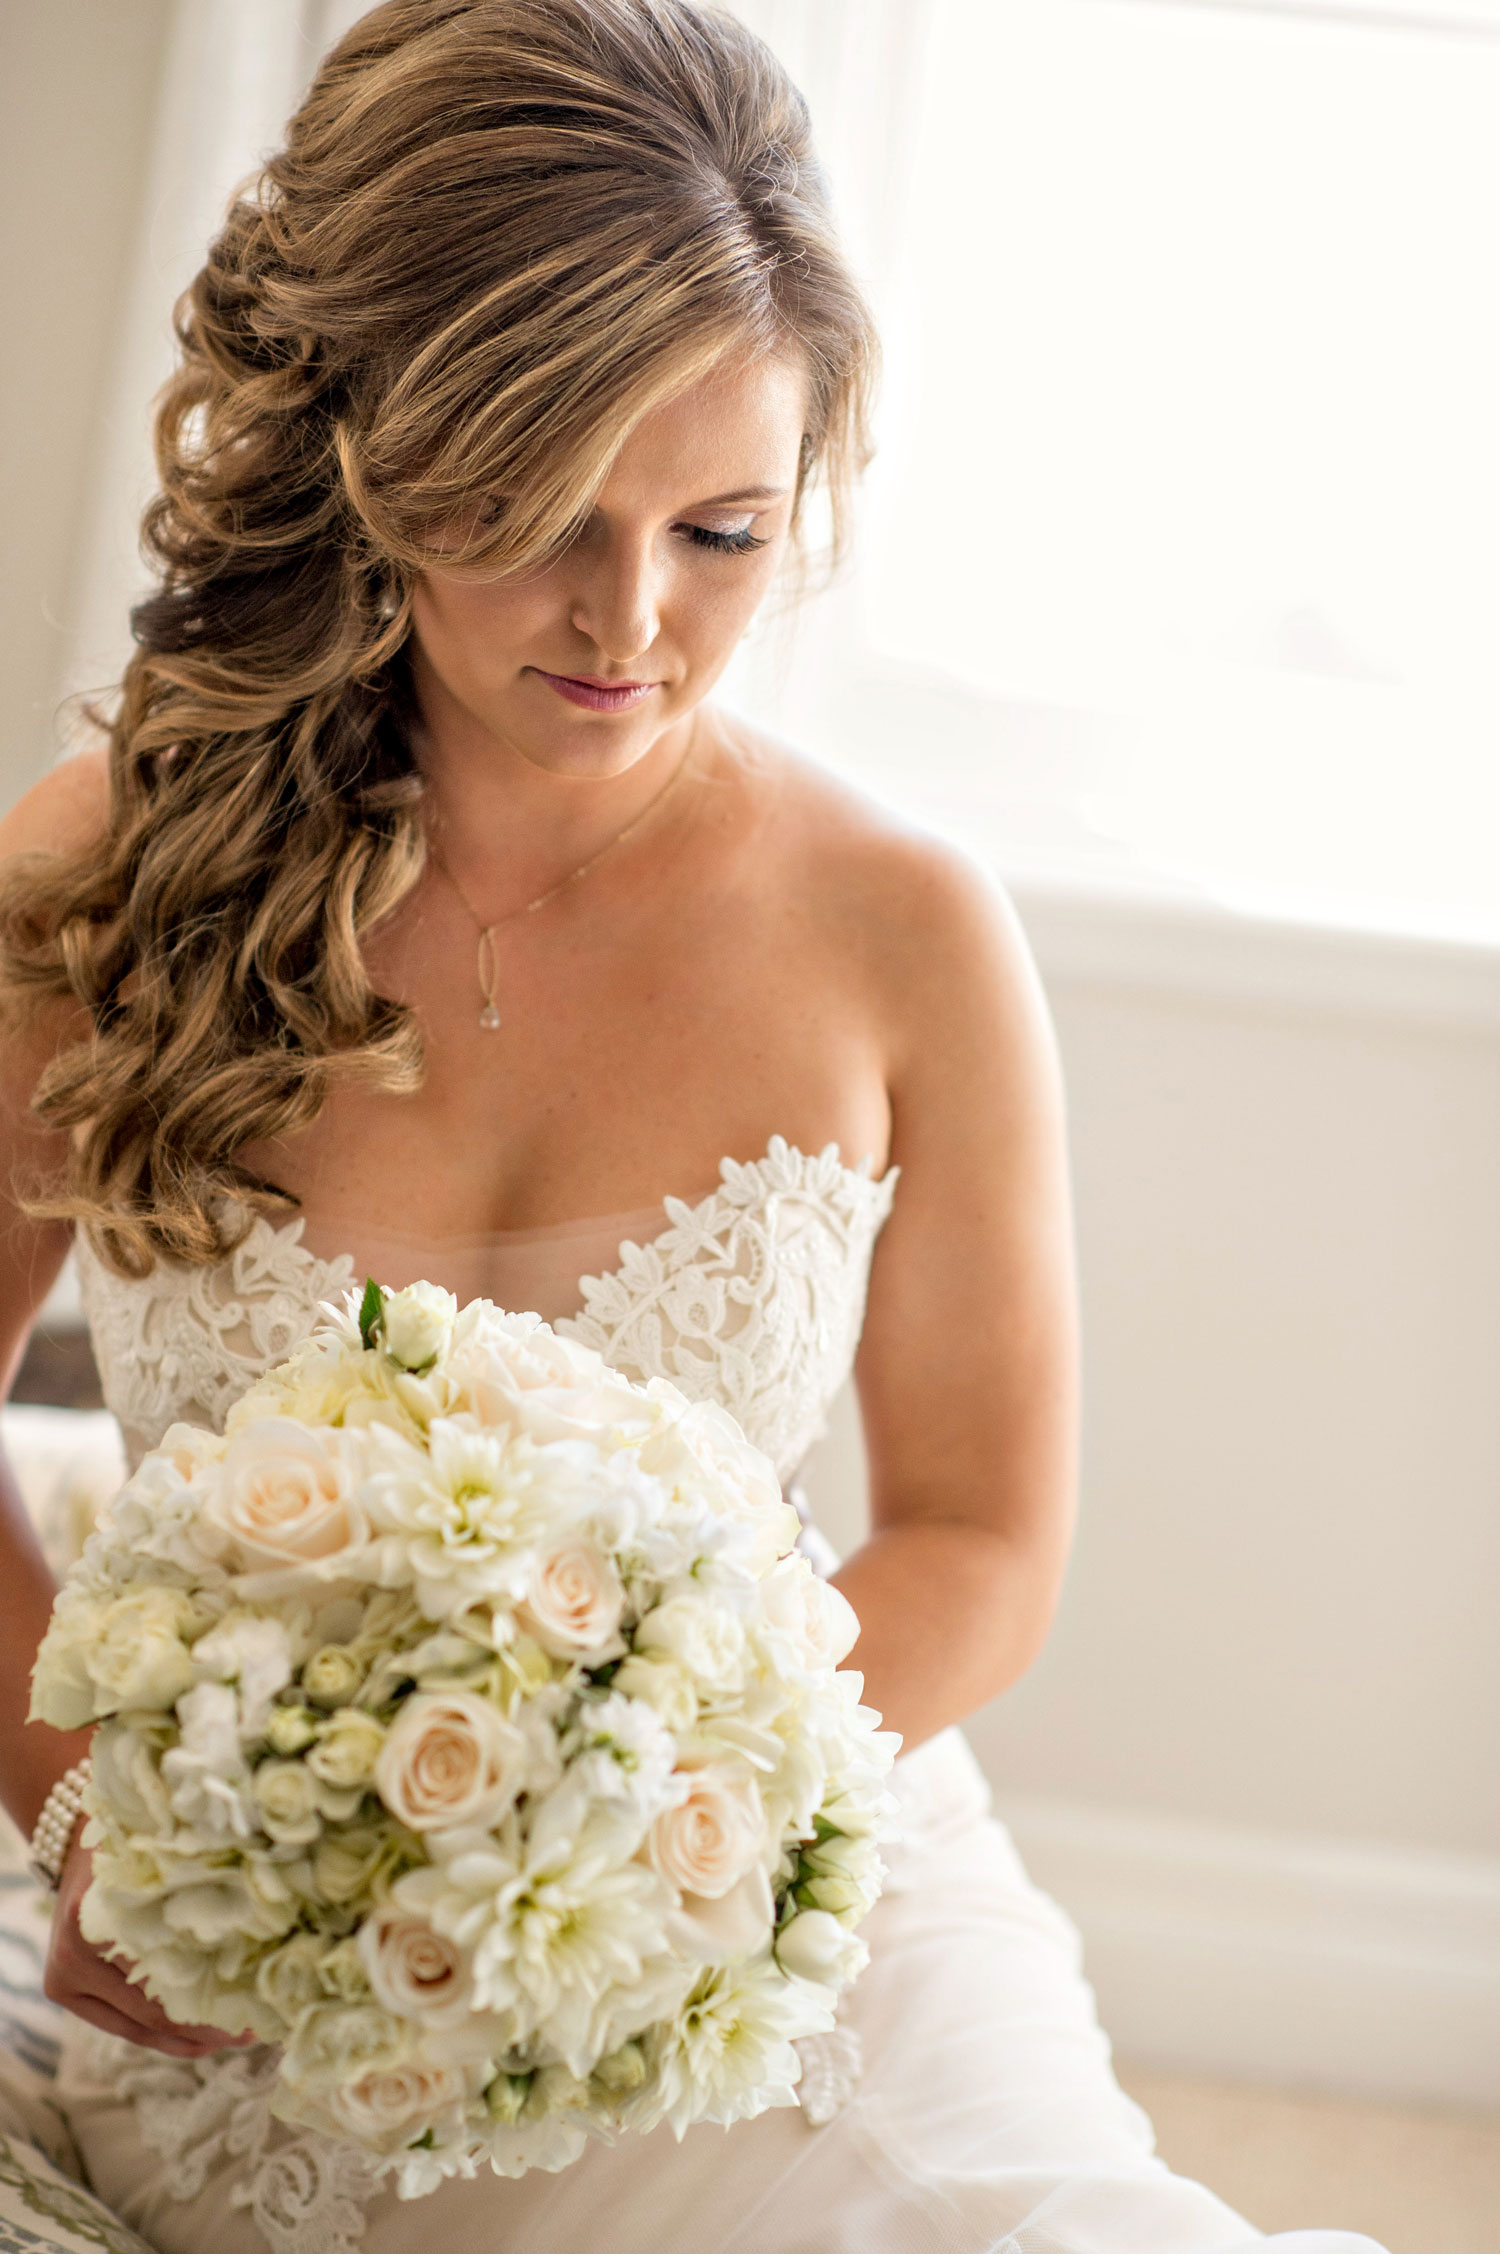 Bride with very curled hairstyle pulled to the side pouf ringlet curls